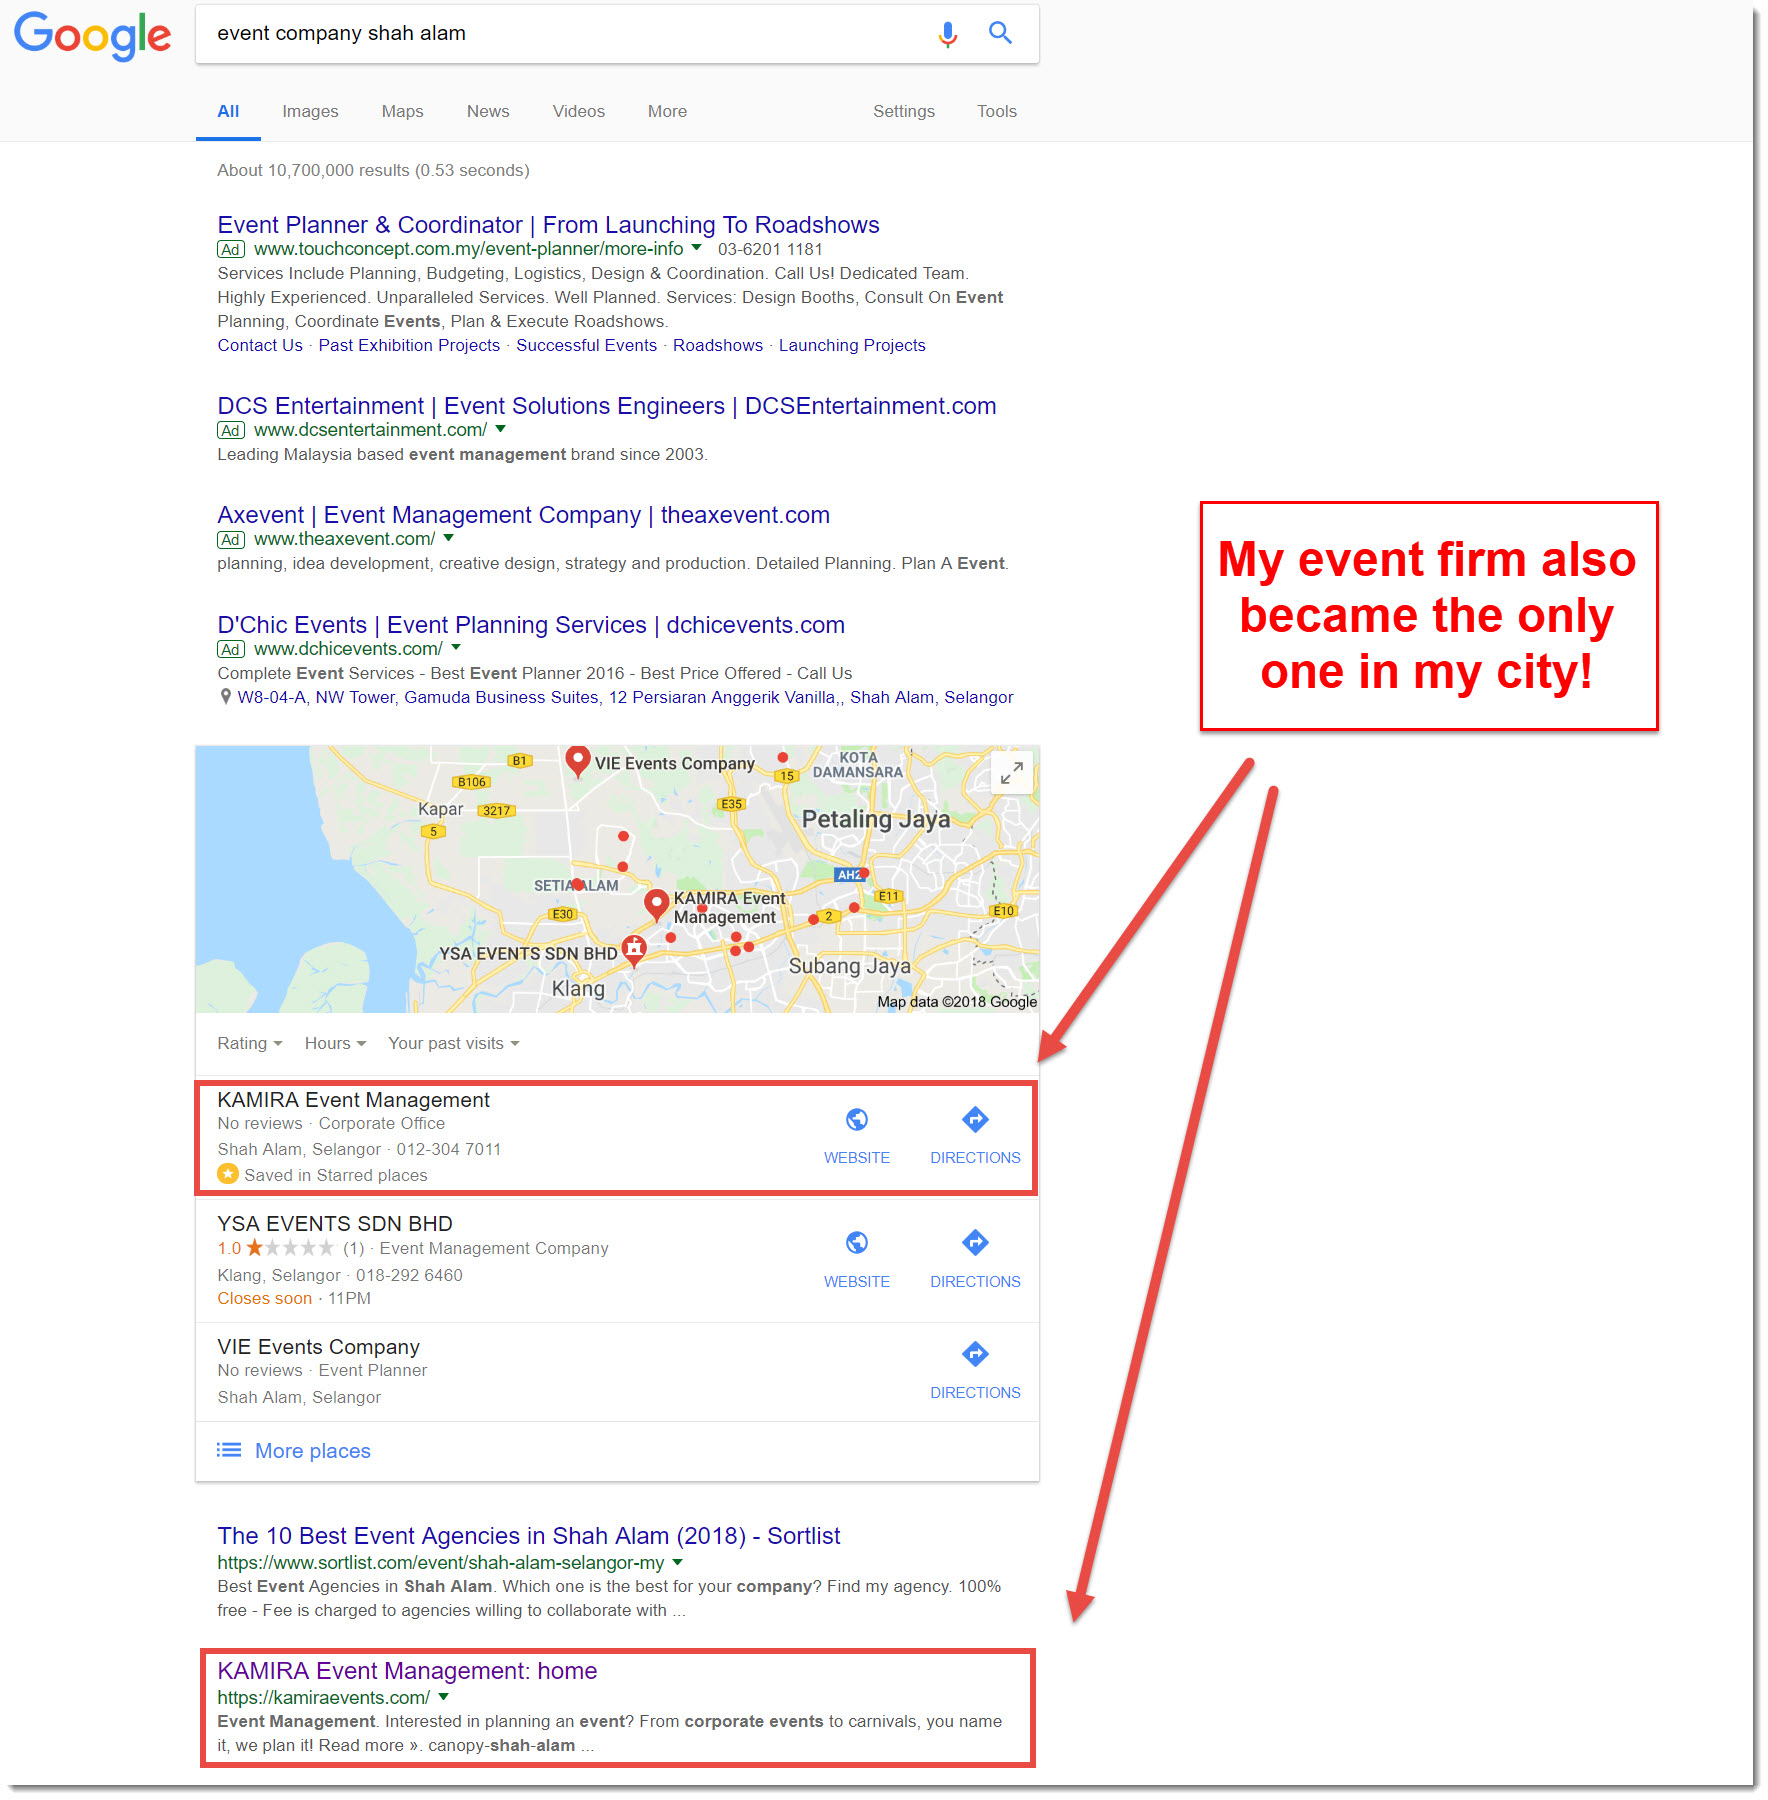 event company shah alam google search results